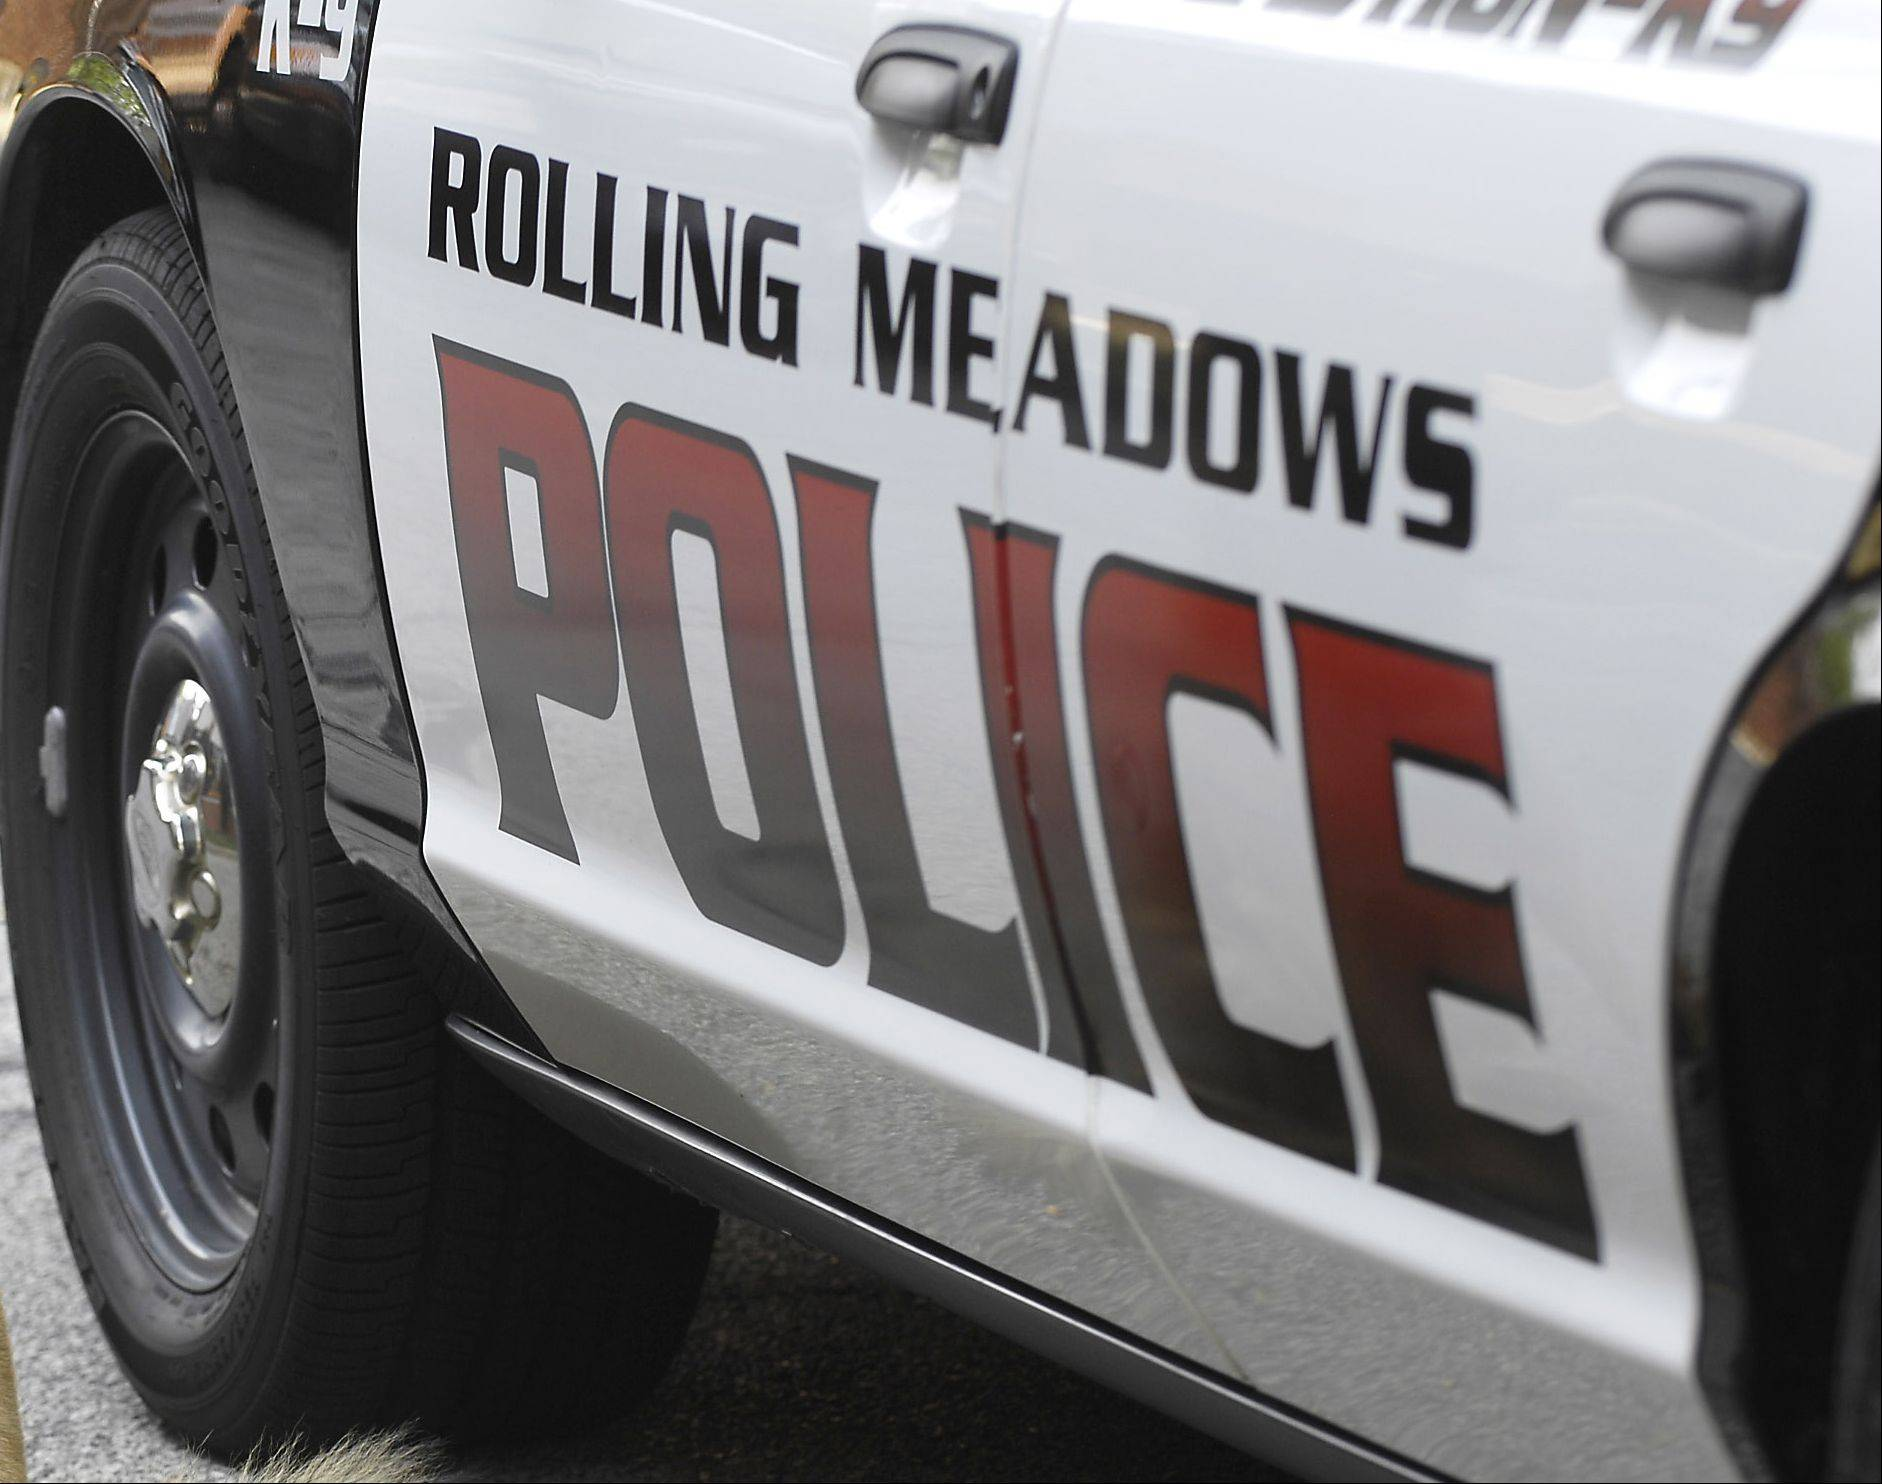 DAILY HERALD FILE PHOTOThe Rolling Meadows Police Department could add part-time officers to its corps in an effort to relieve full-time officers of administrative tasks and get them back on the streets.